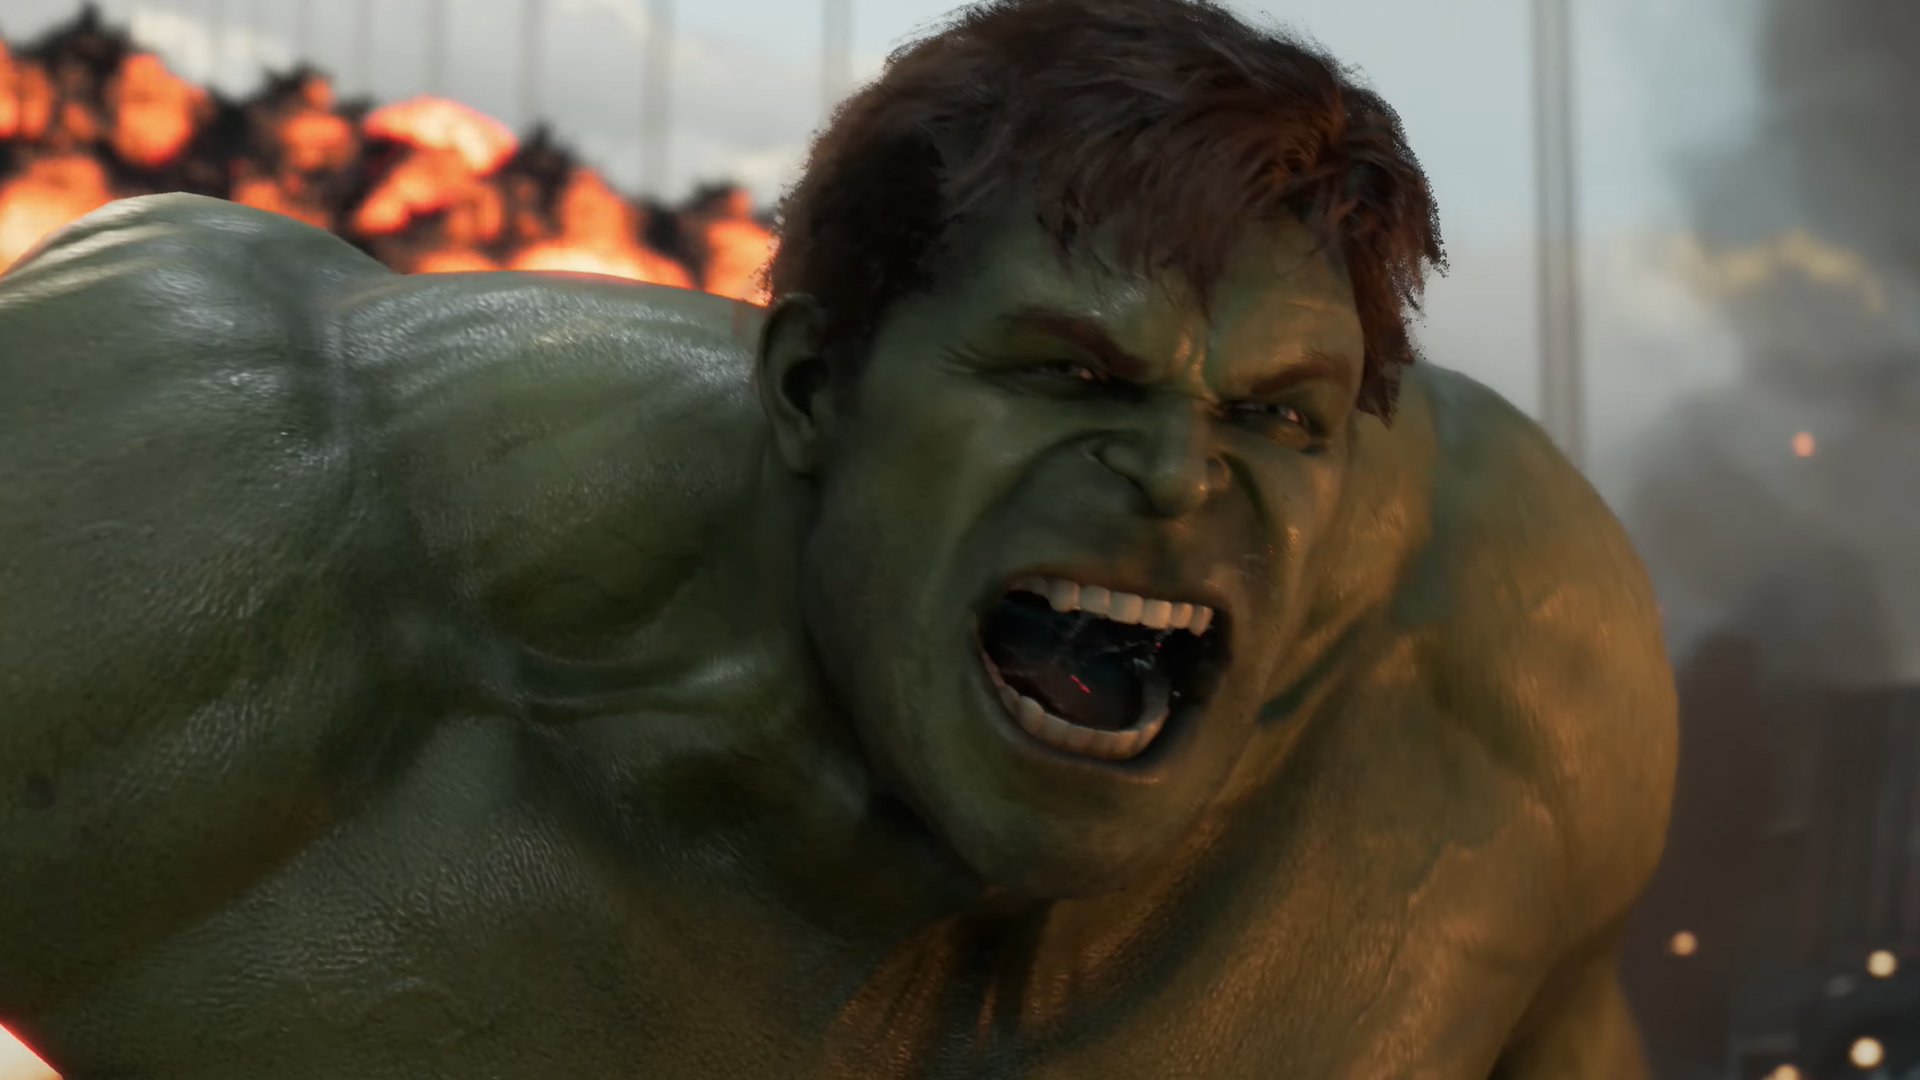 Pay $20 extra for Marvel's Avengers, play it three days early